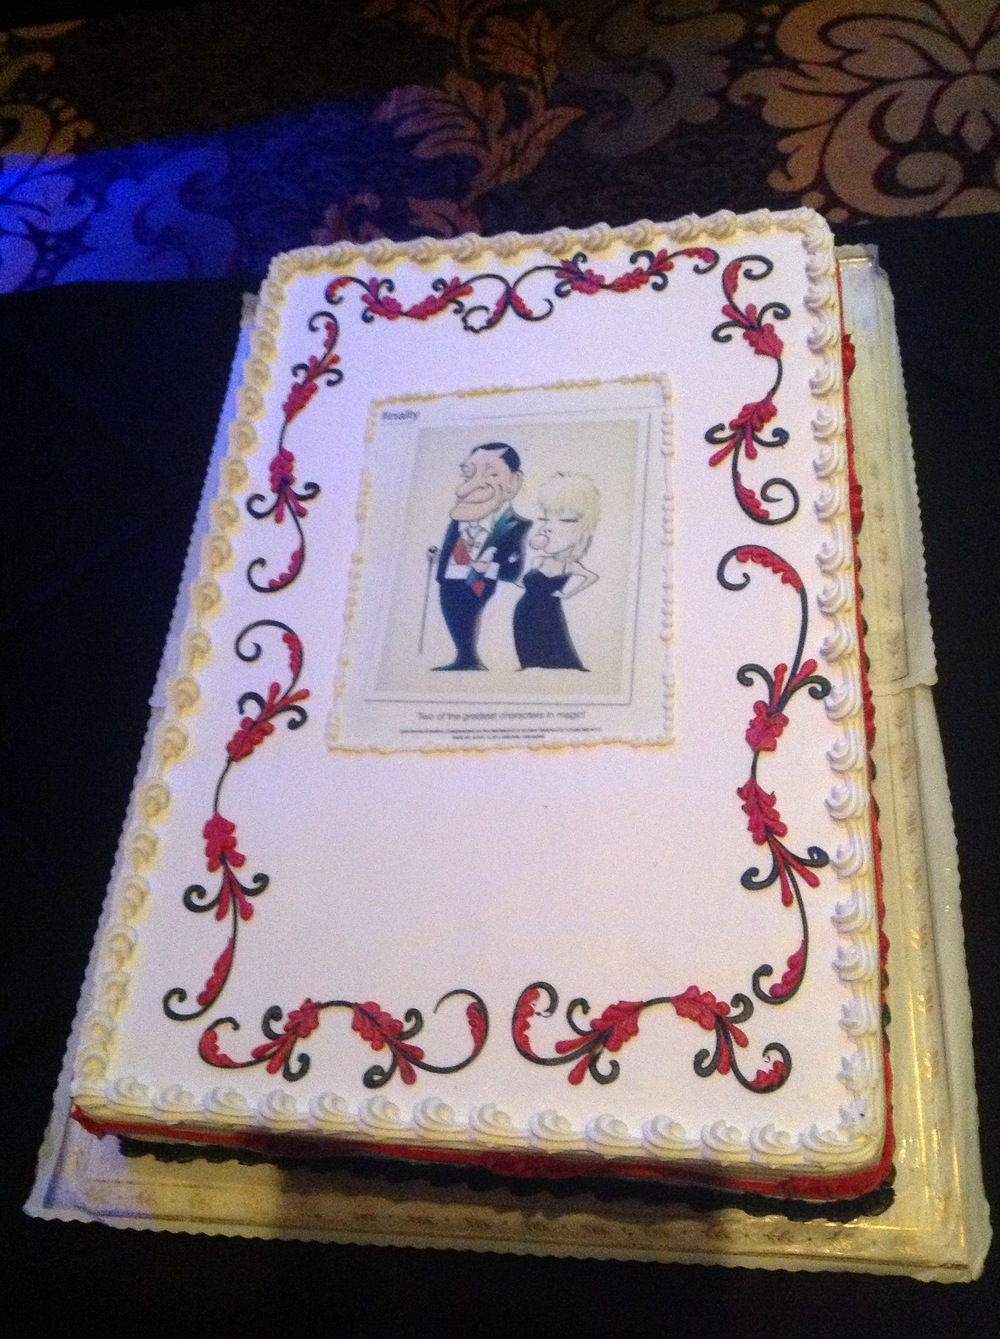 """Finally""Cake from Lance Burton"